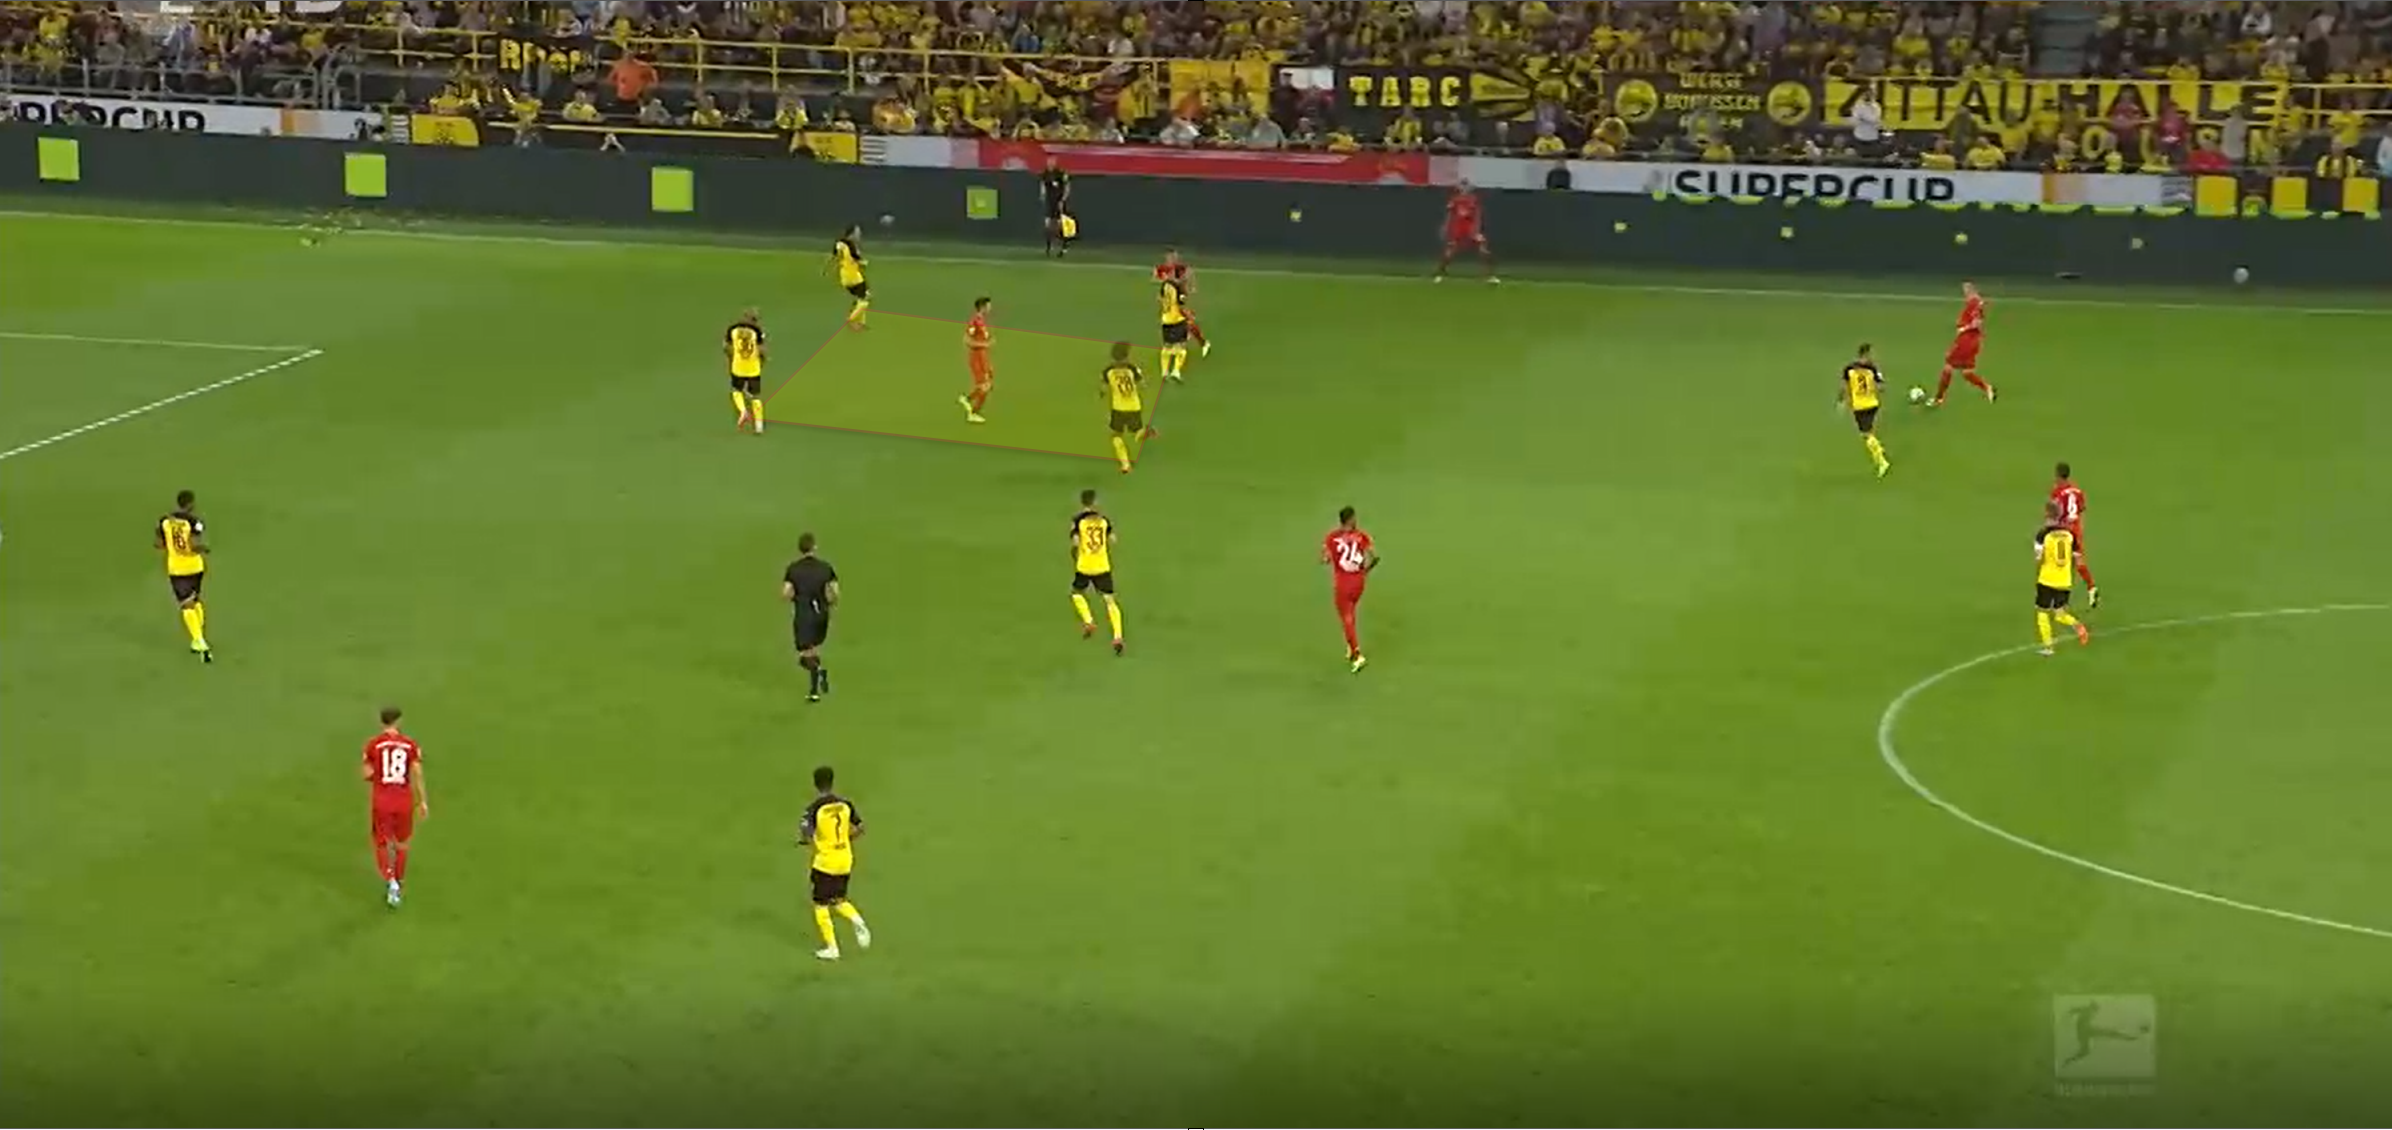 German Super Cup 2019: Borussia Dortmund vs Bayern Munich - Tactical Analysis tactics analysis